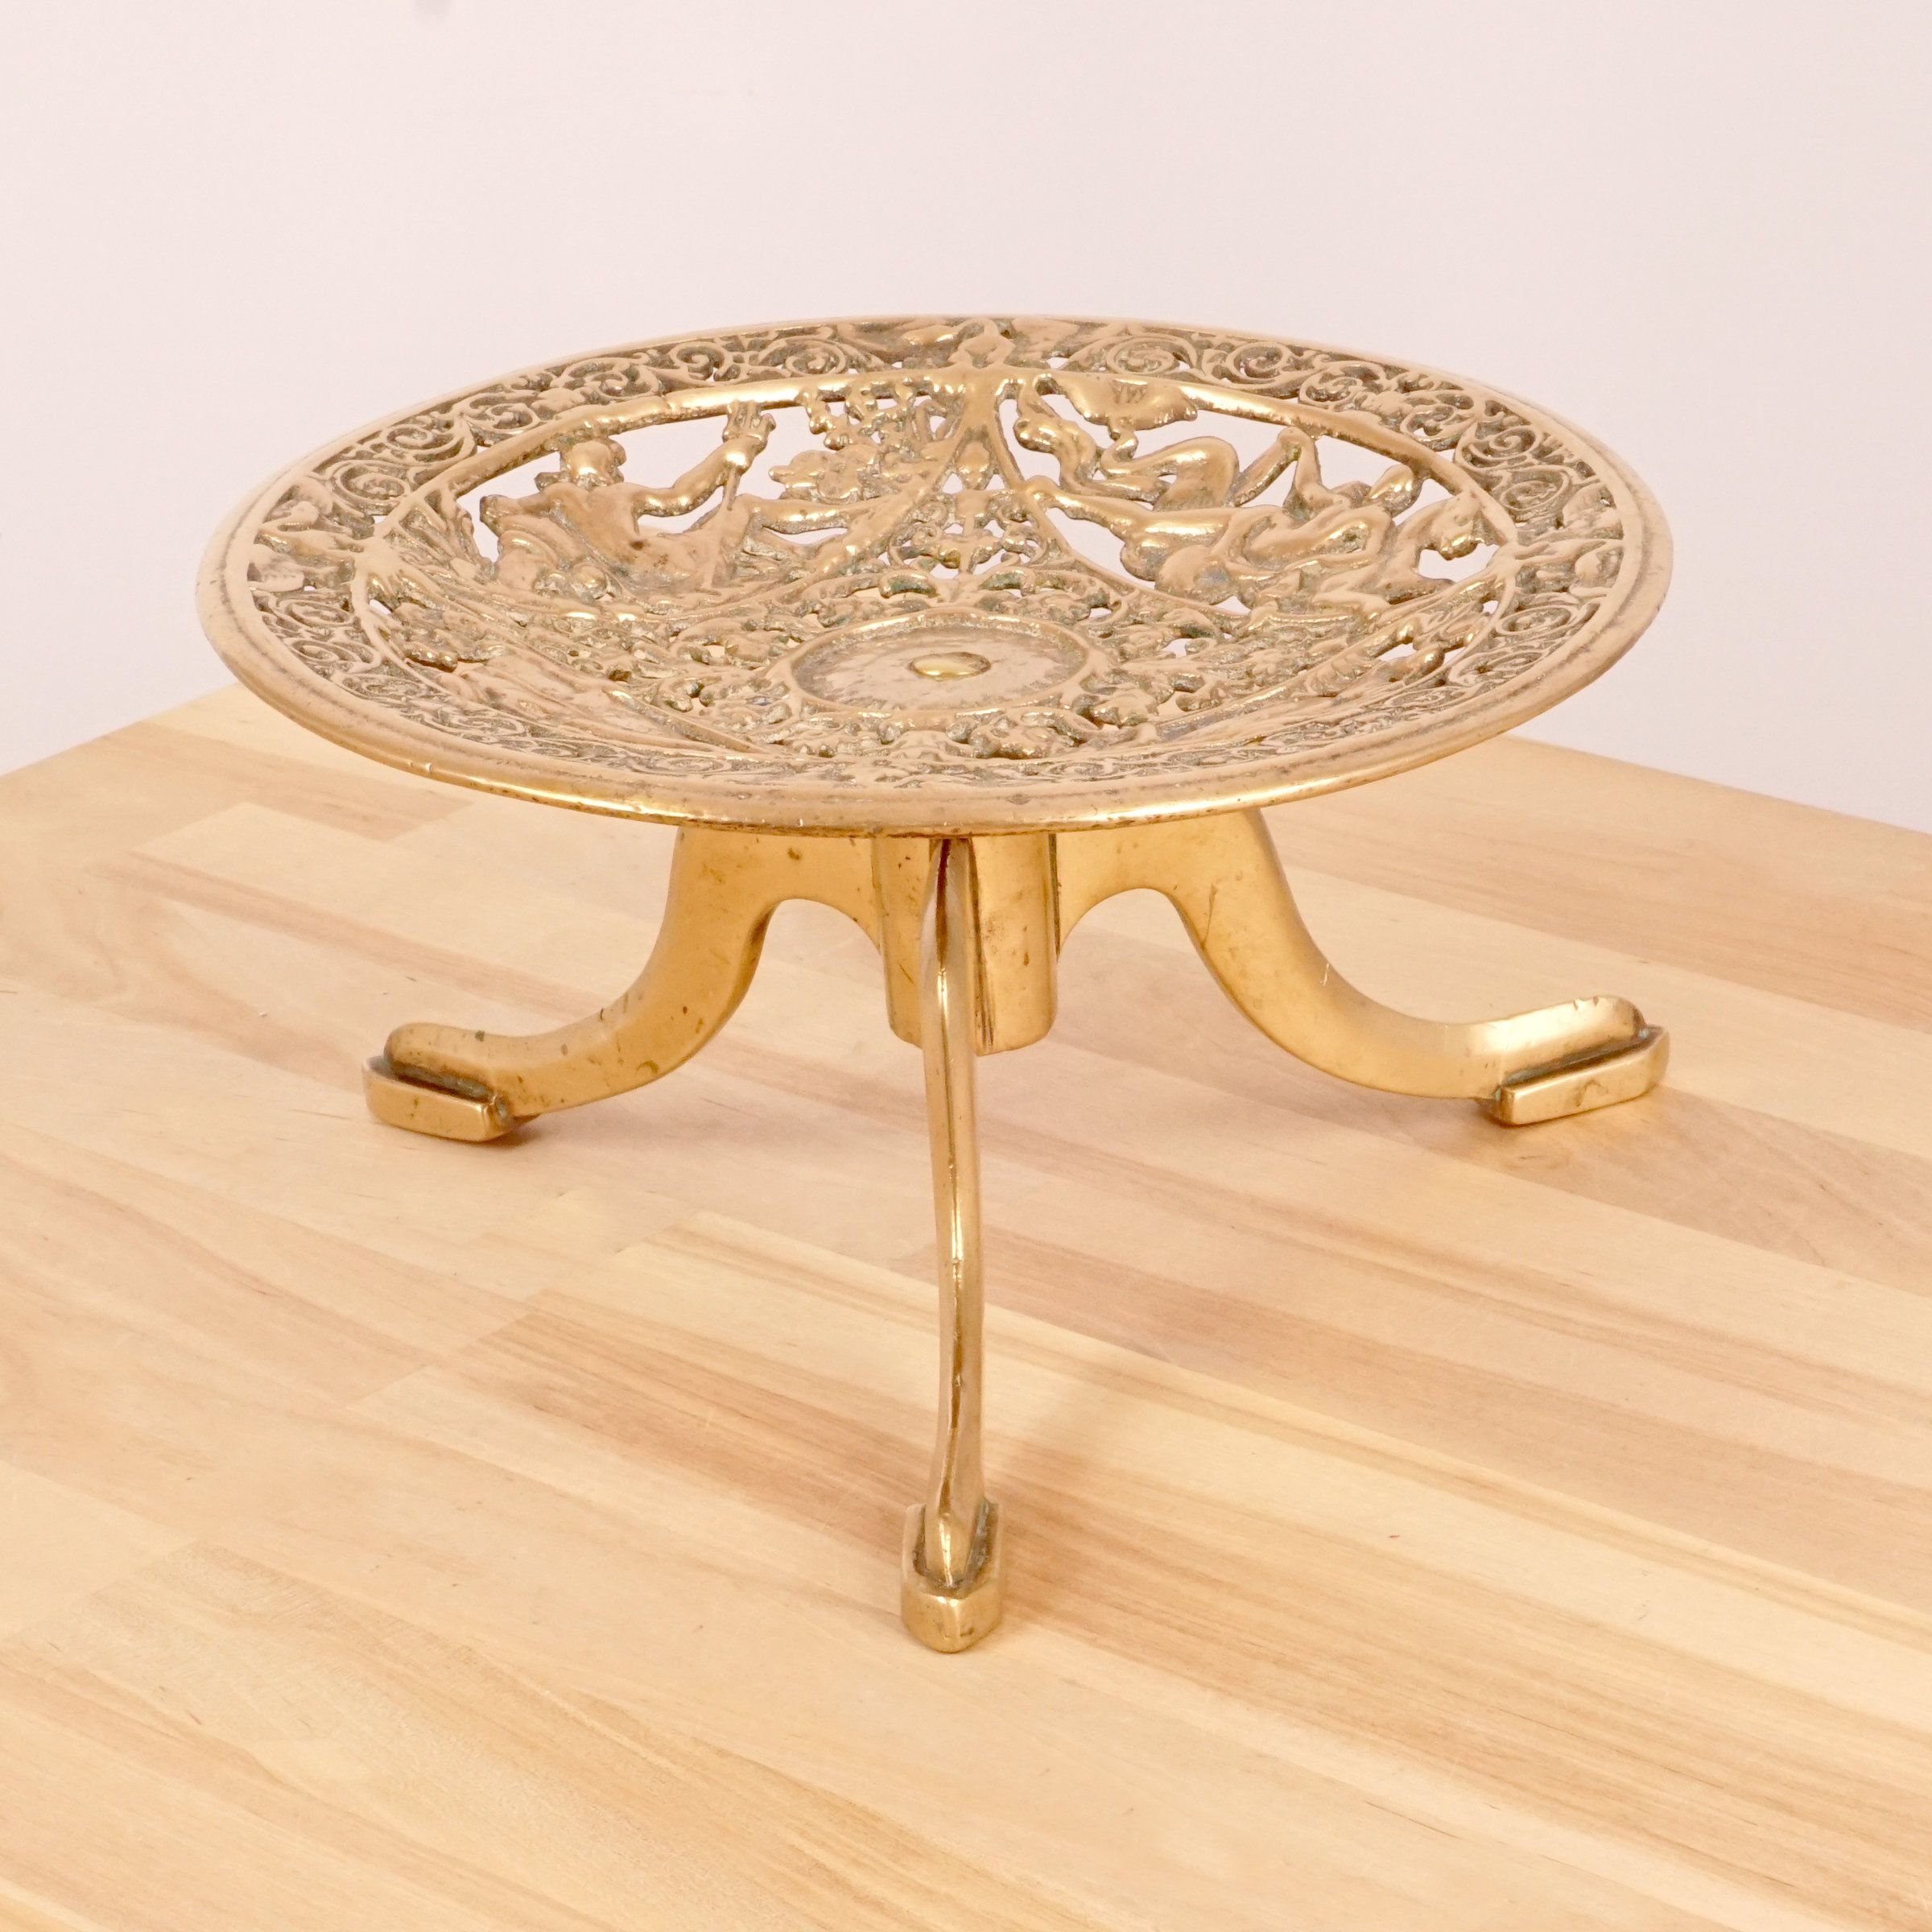 Bowl Tray Dish Vintage Solid Brass Elevated On A Round Stand Floral Spiritual Pattern 3 Legs Brass Tray Solid Brass Brass